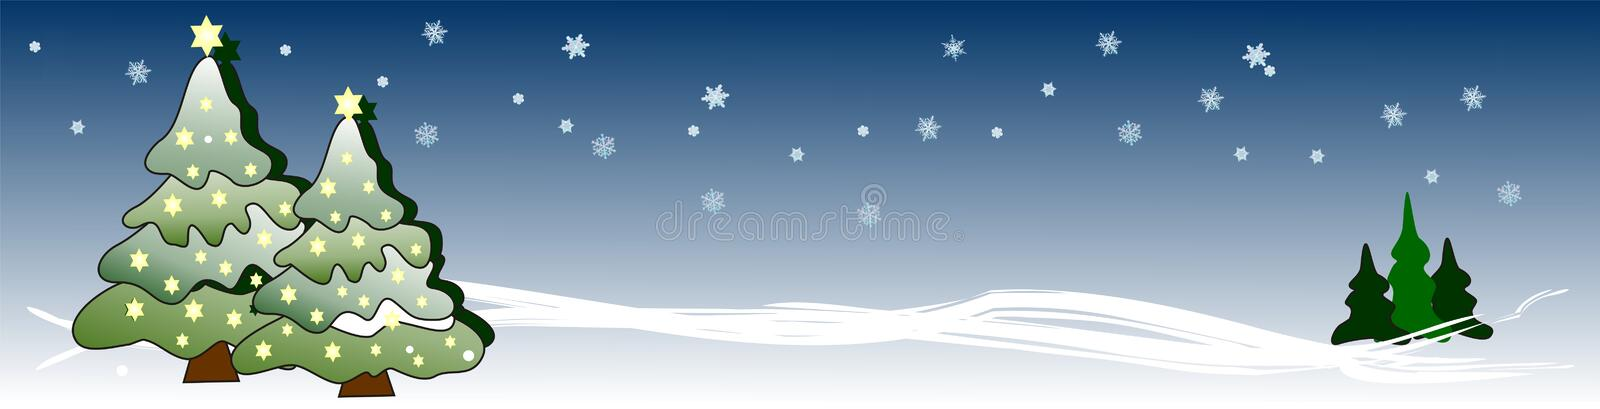 Banner with Xmas trees and glowing stars. Decorative Christmas banner / header decorated with lots og glowing stars against a sky with cute snowflakes stock illustration